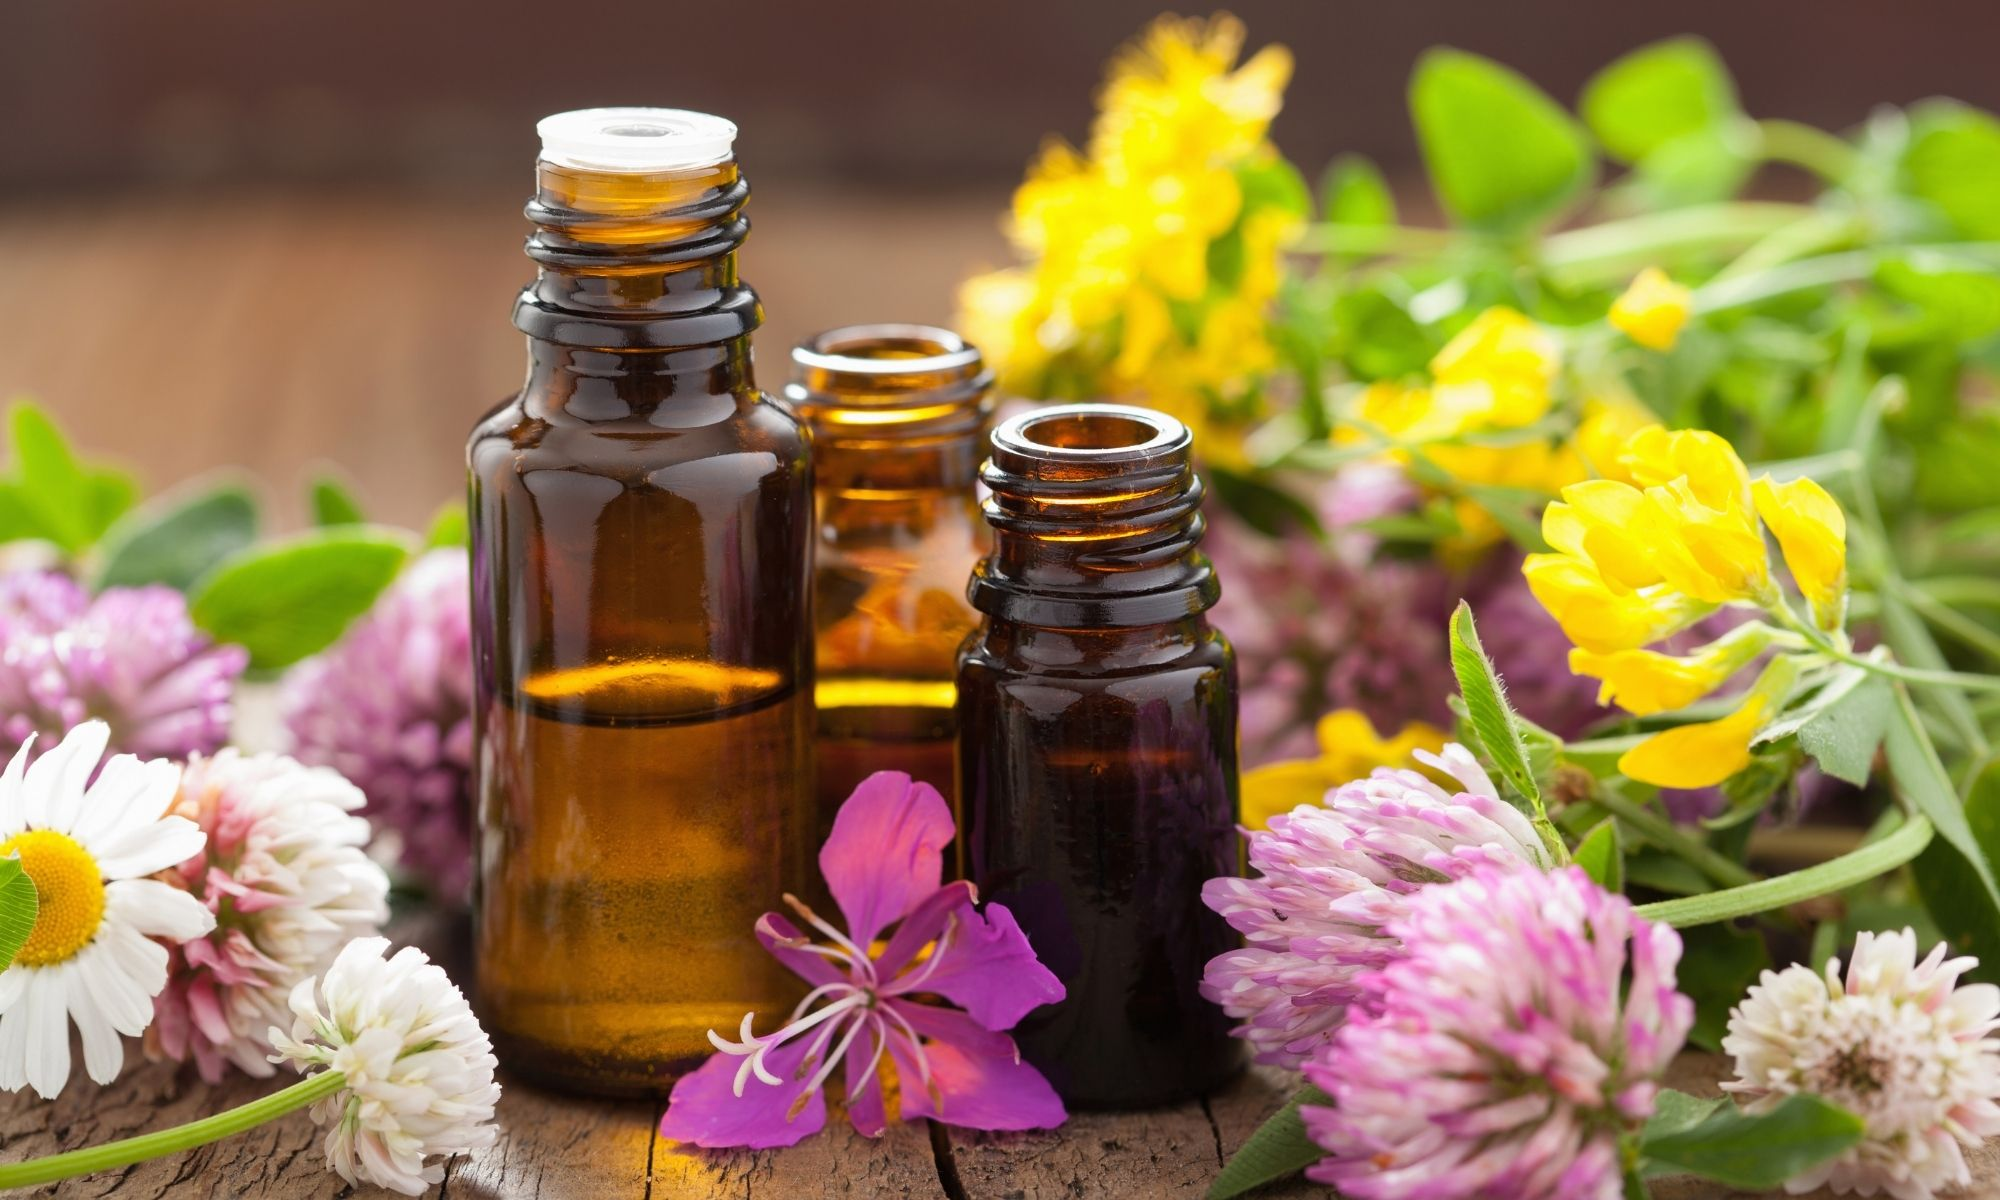 Labeling Requirements for Essential Oils